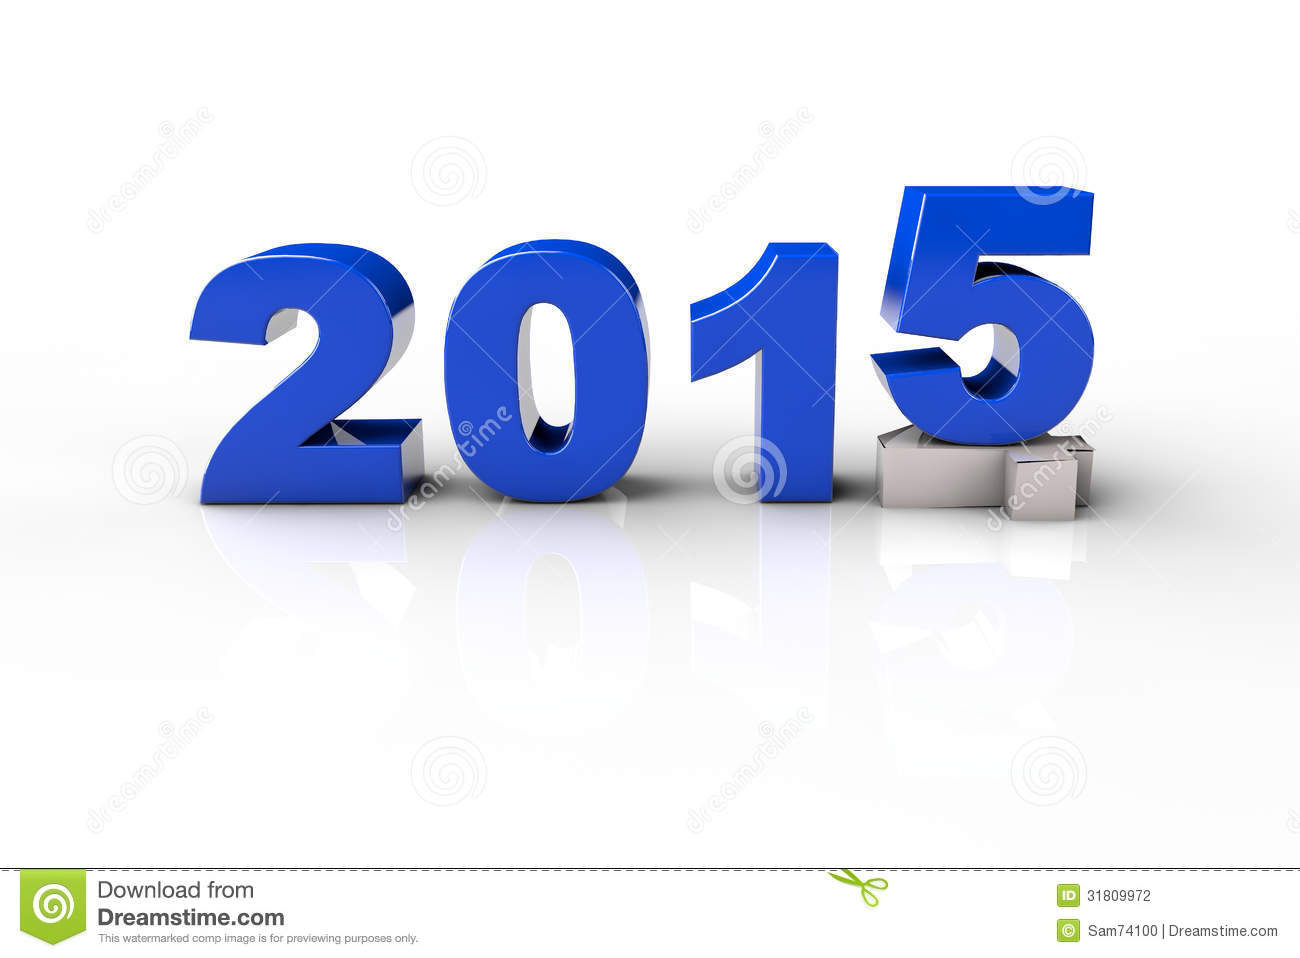 new years eve clipart 2015 - photo #31